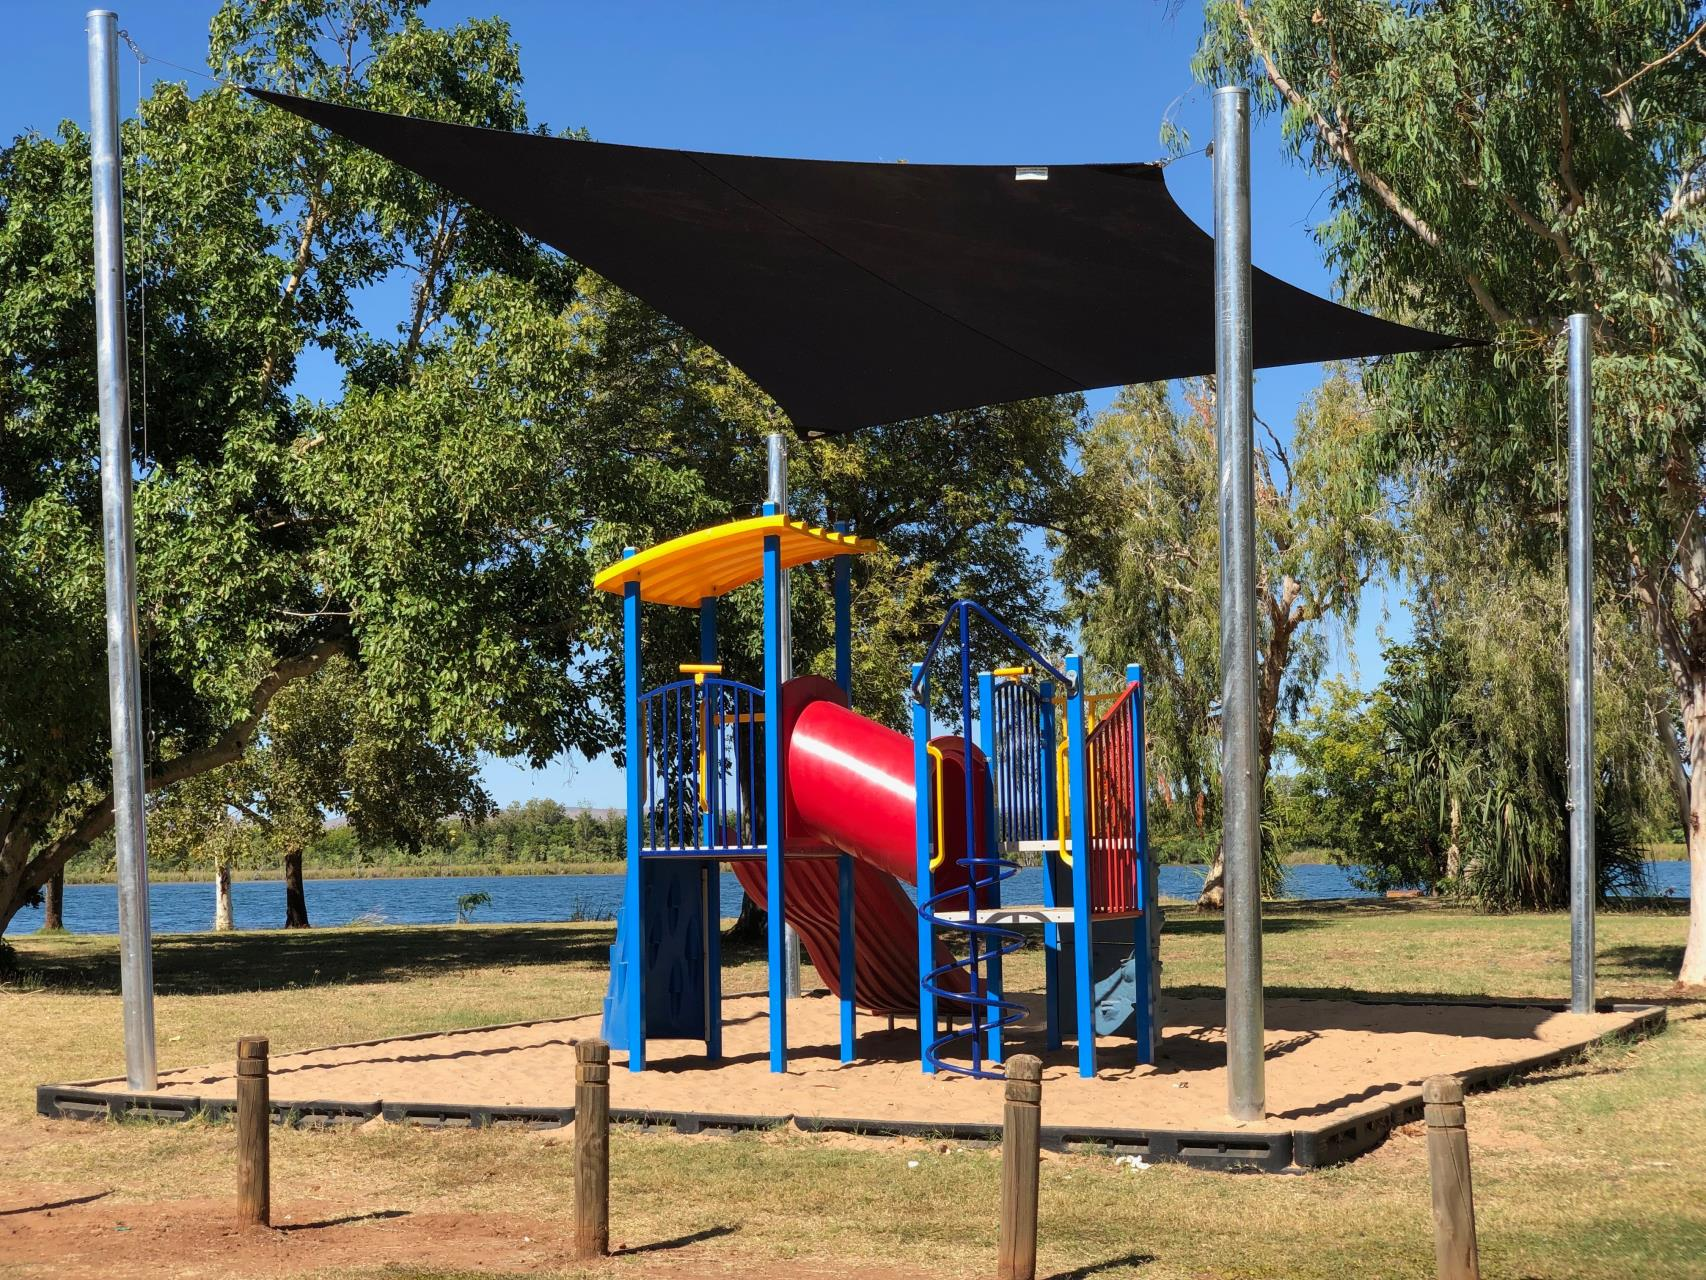 Public playgrounds, outside gyms and skate parks to close 12pm midday today